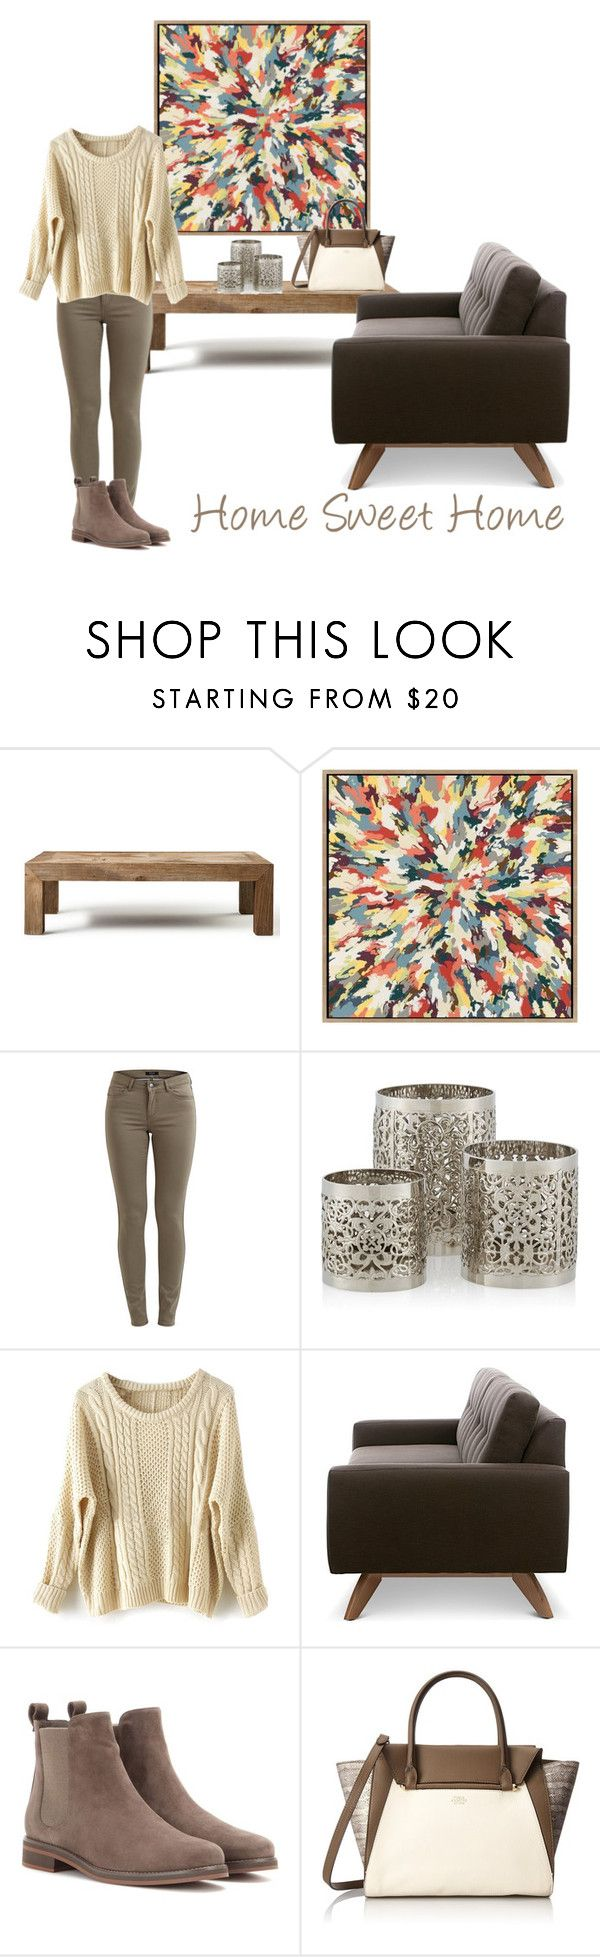 """""""Home Sweet Home"""" by claavedefa ❤ liked on Polyvore featuring interior, interiors, interior design, home, home decor, interior decorating, Flamant, VILA, TrueModern and Loro Piana"""